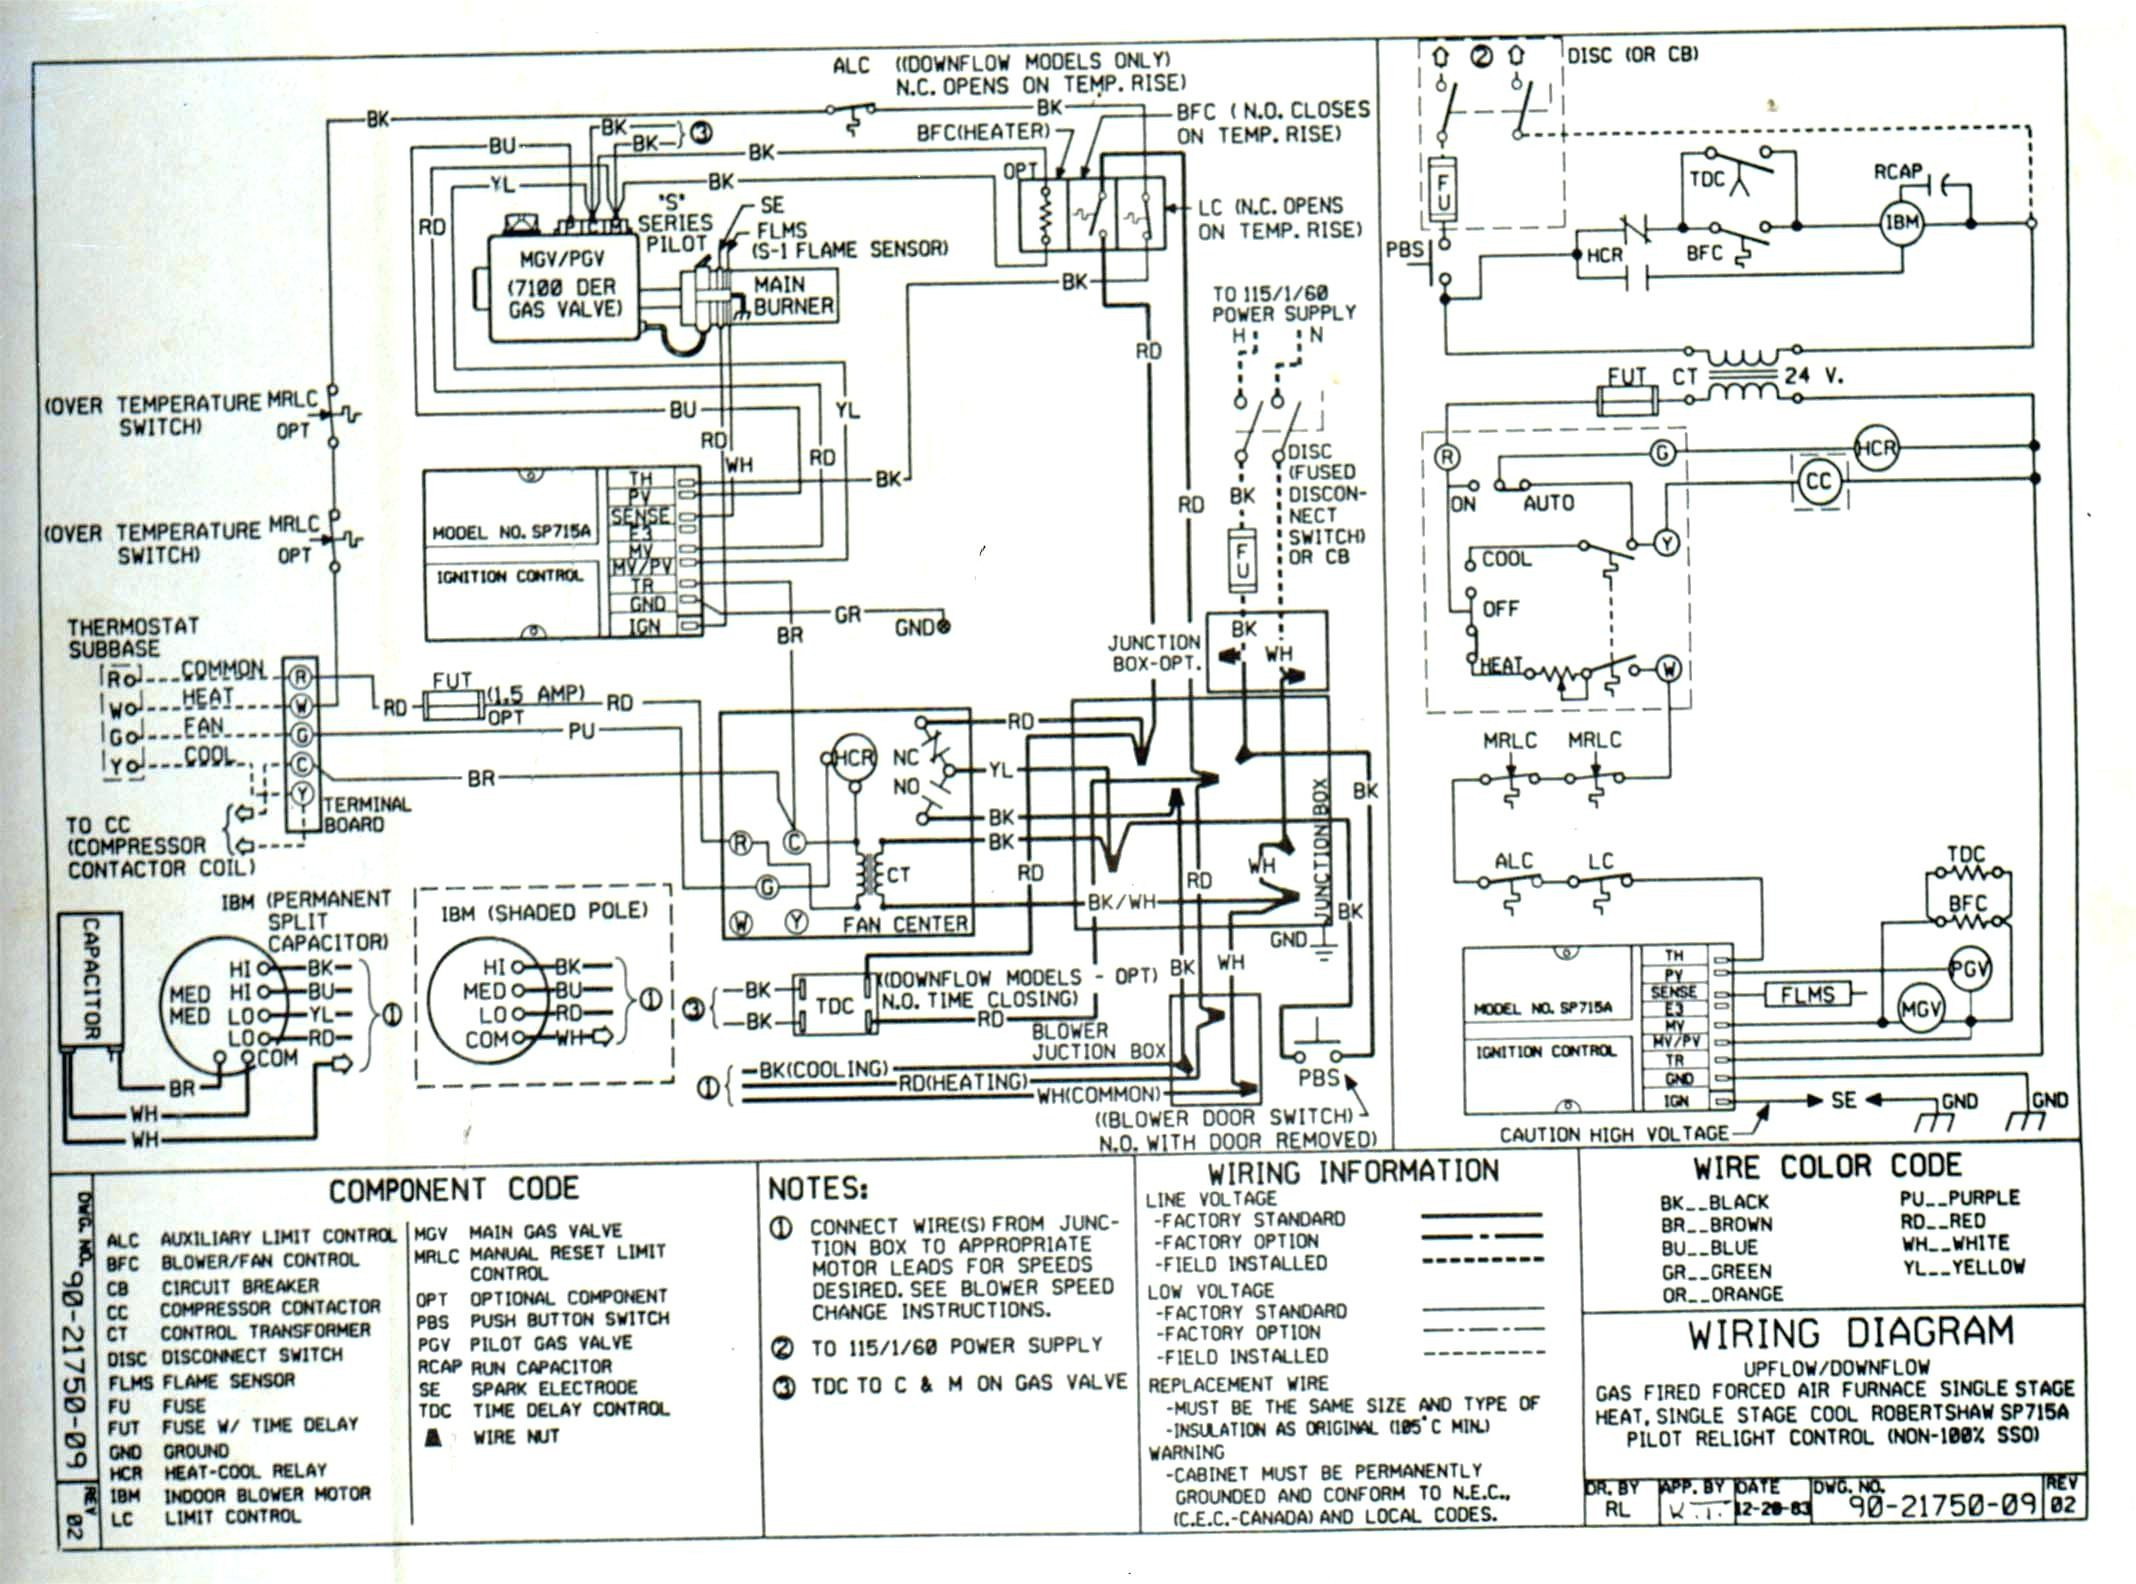 trane xr80 wiring diagram Collection-Trane thermostat Wiring Diagram Luxury Wiring Diagram for Trane Xe1000 Wiring Diagram 11-s